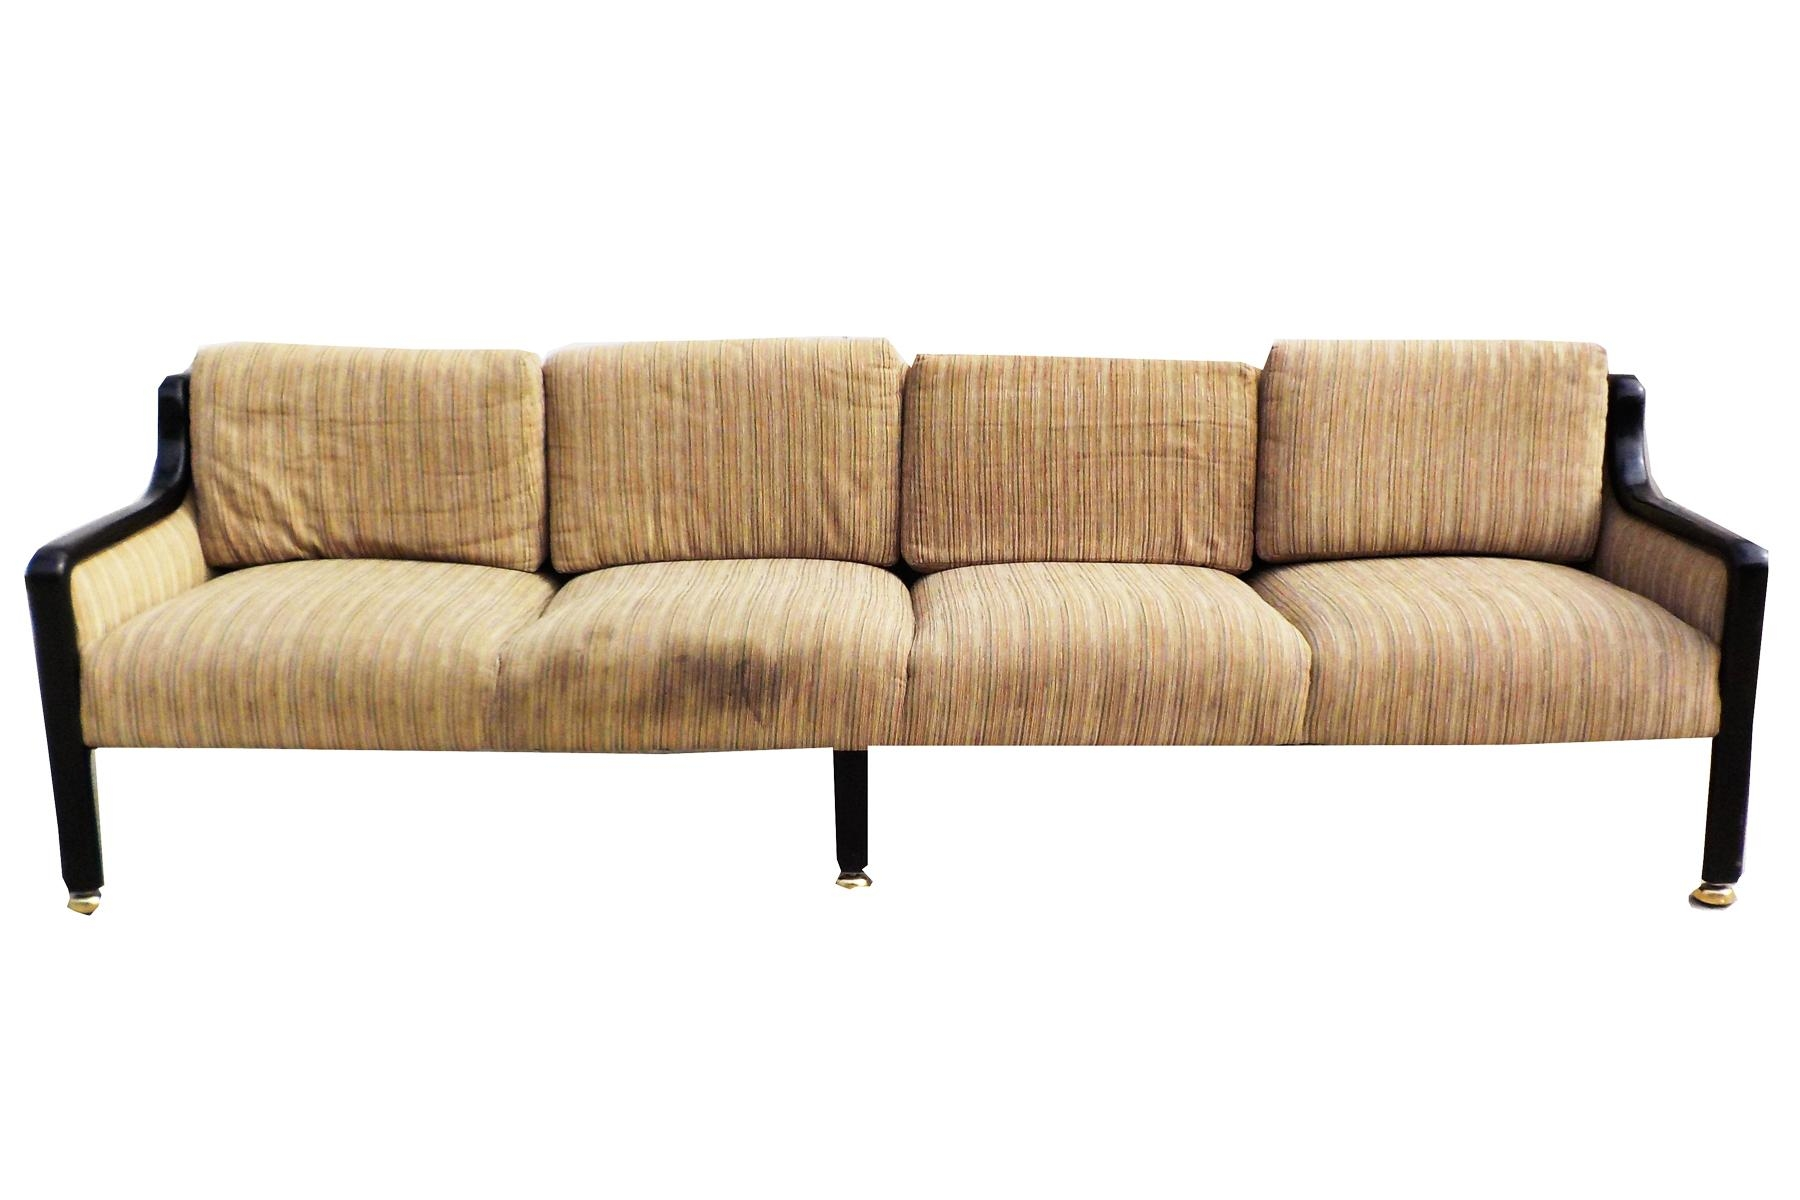 Cb2 Piazza Sofa | Sofa Gallery | Kengire With Cb2 Piazza Sofas (Image 8 of 20)